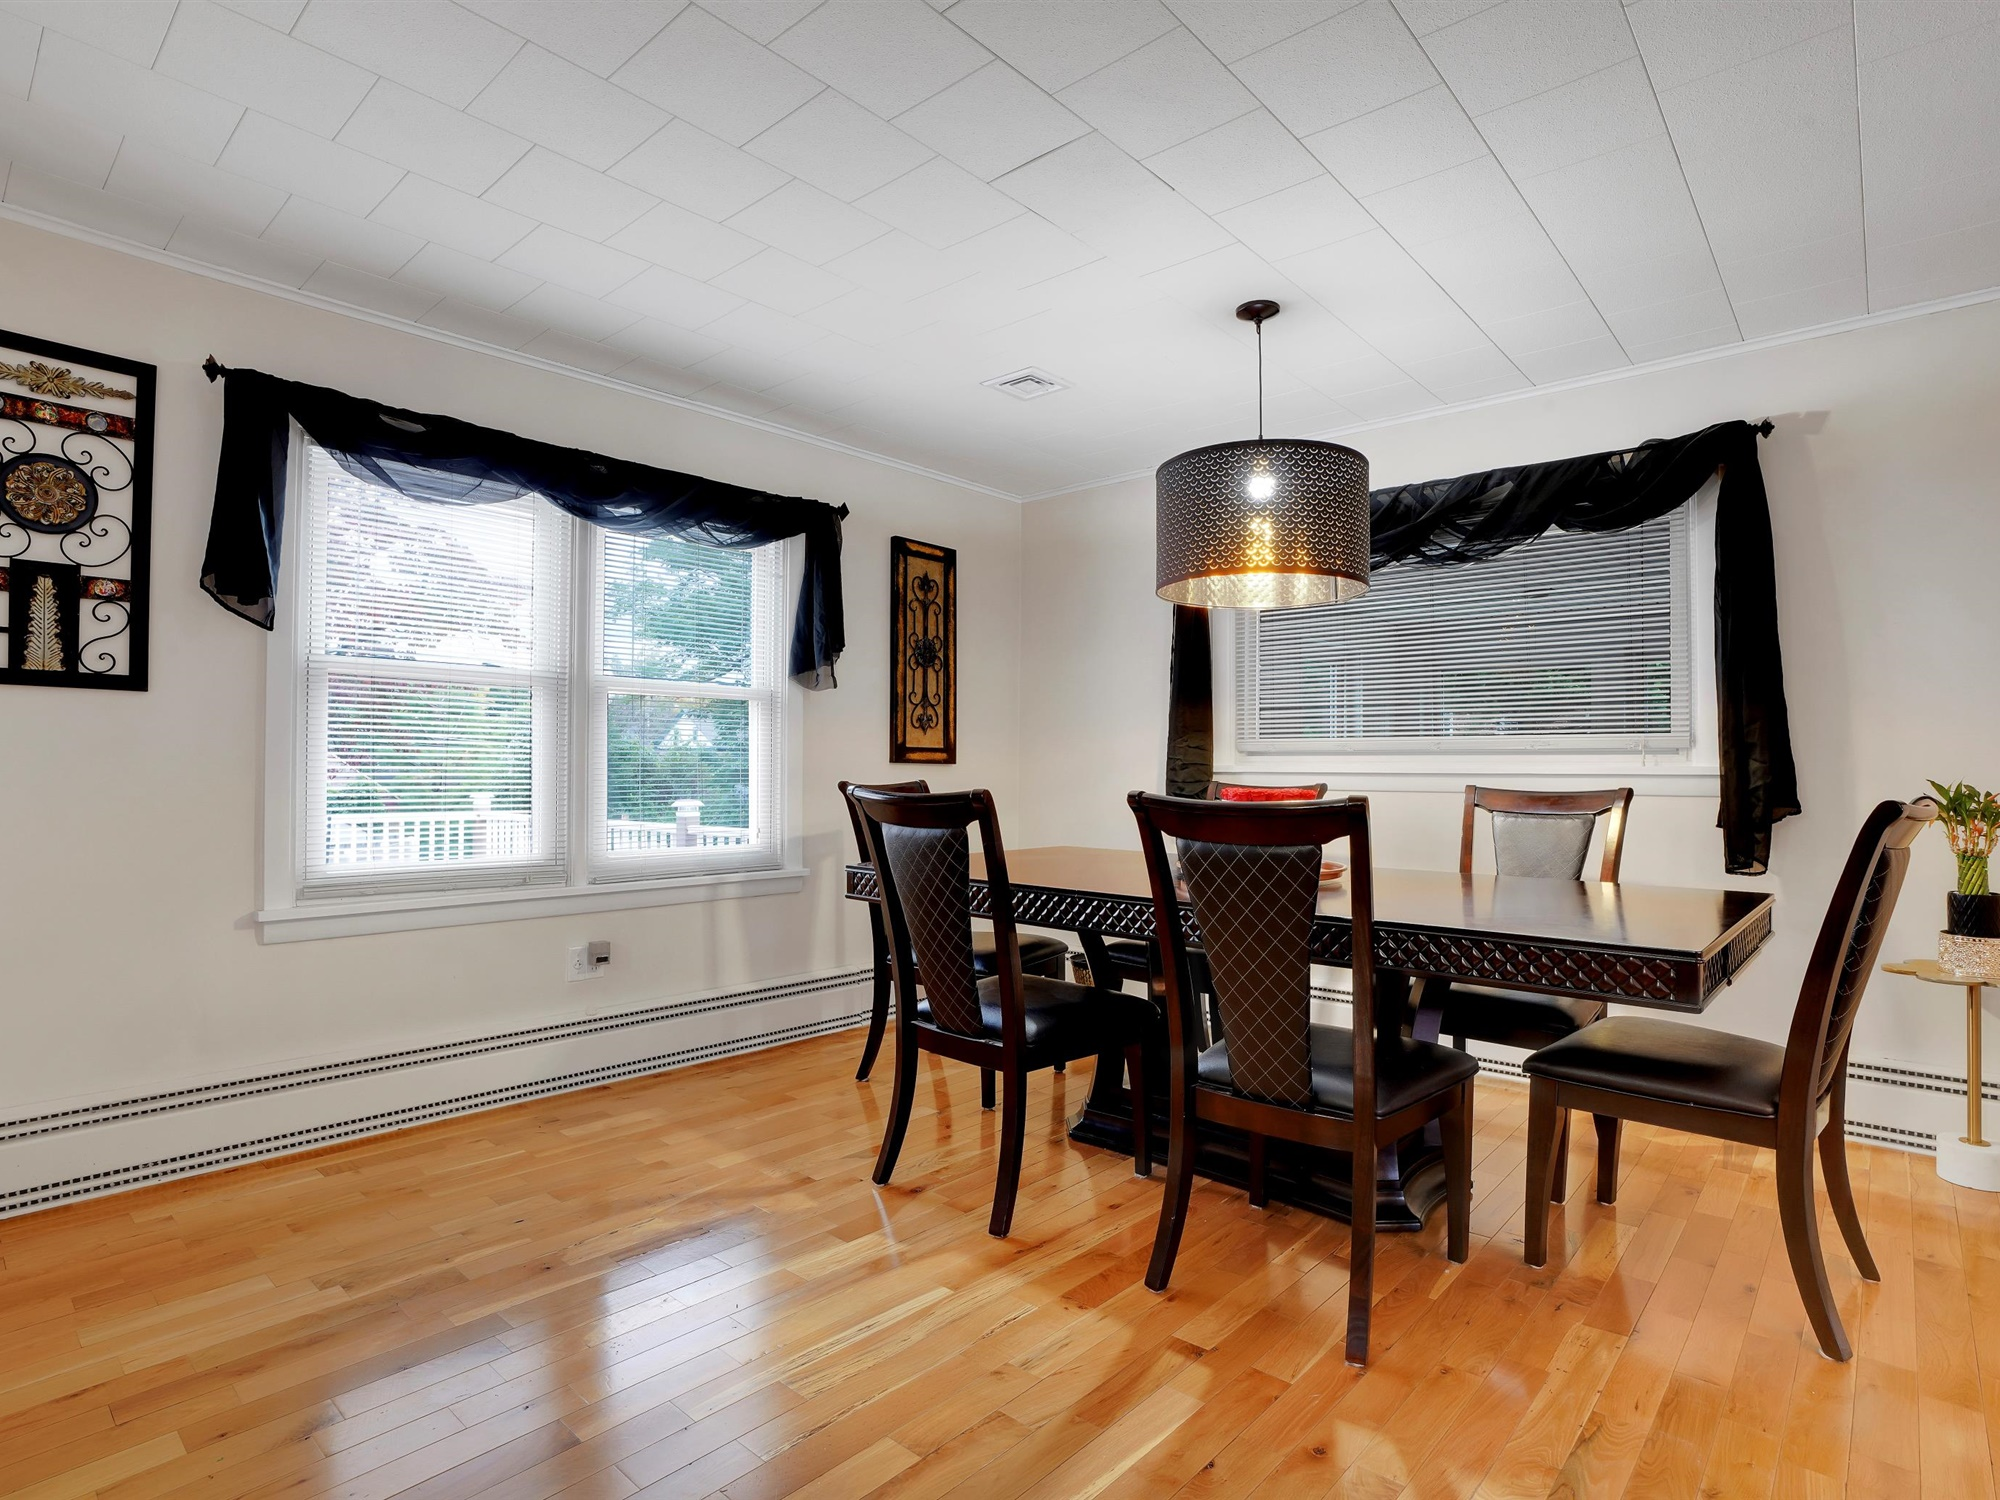 2022 Kline St - Charming single family home with dining room